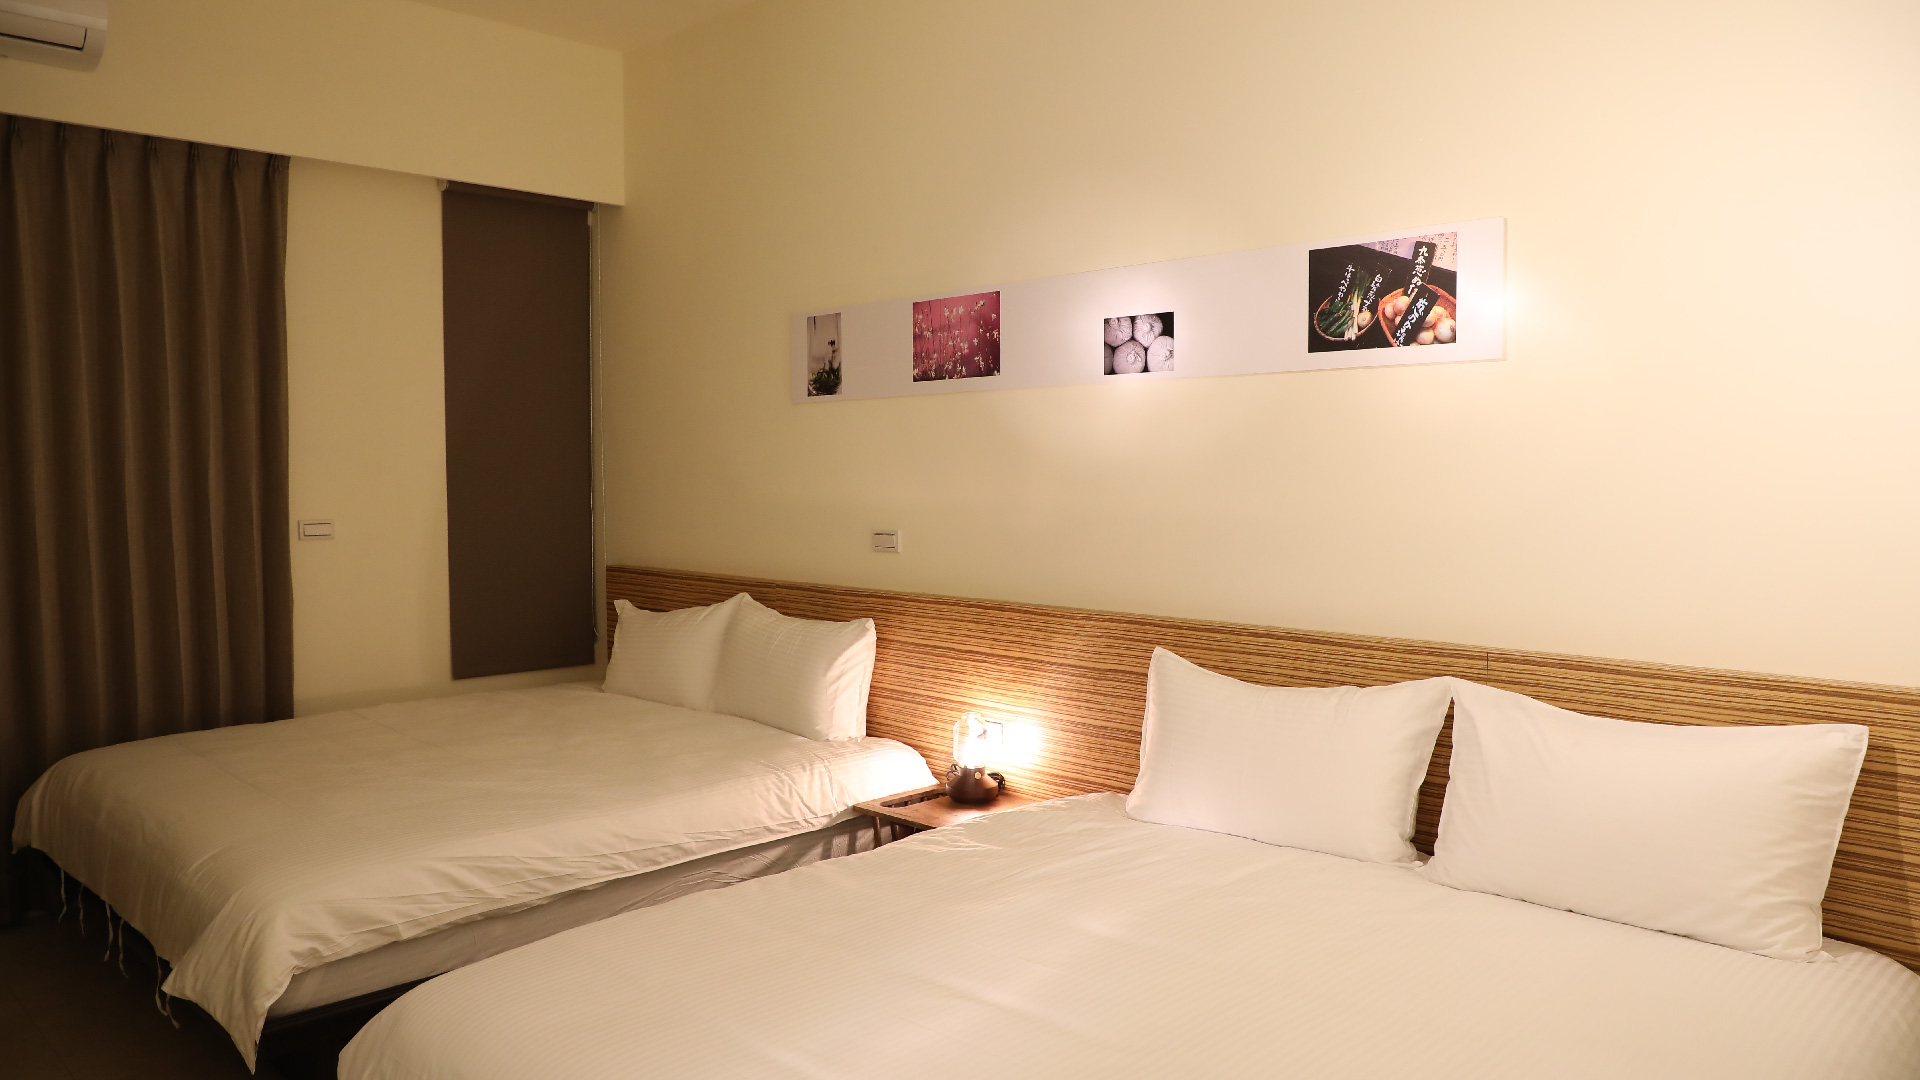 Rooms-66_205-1